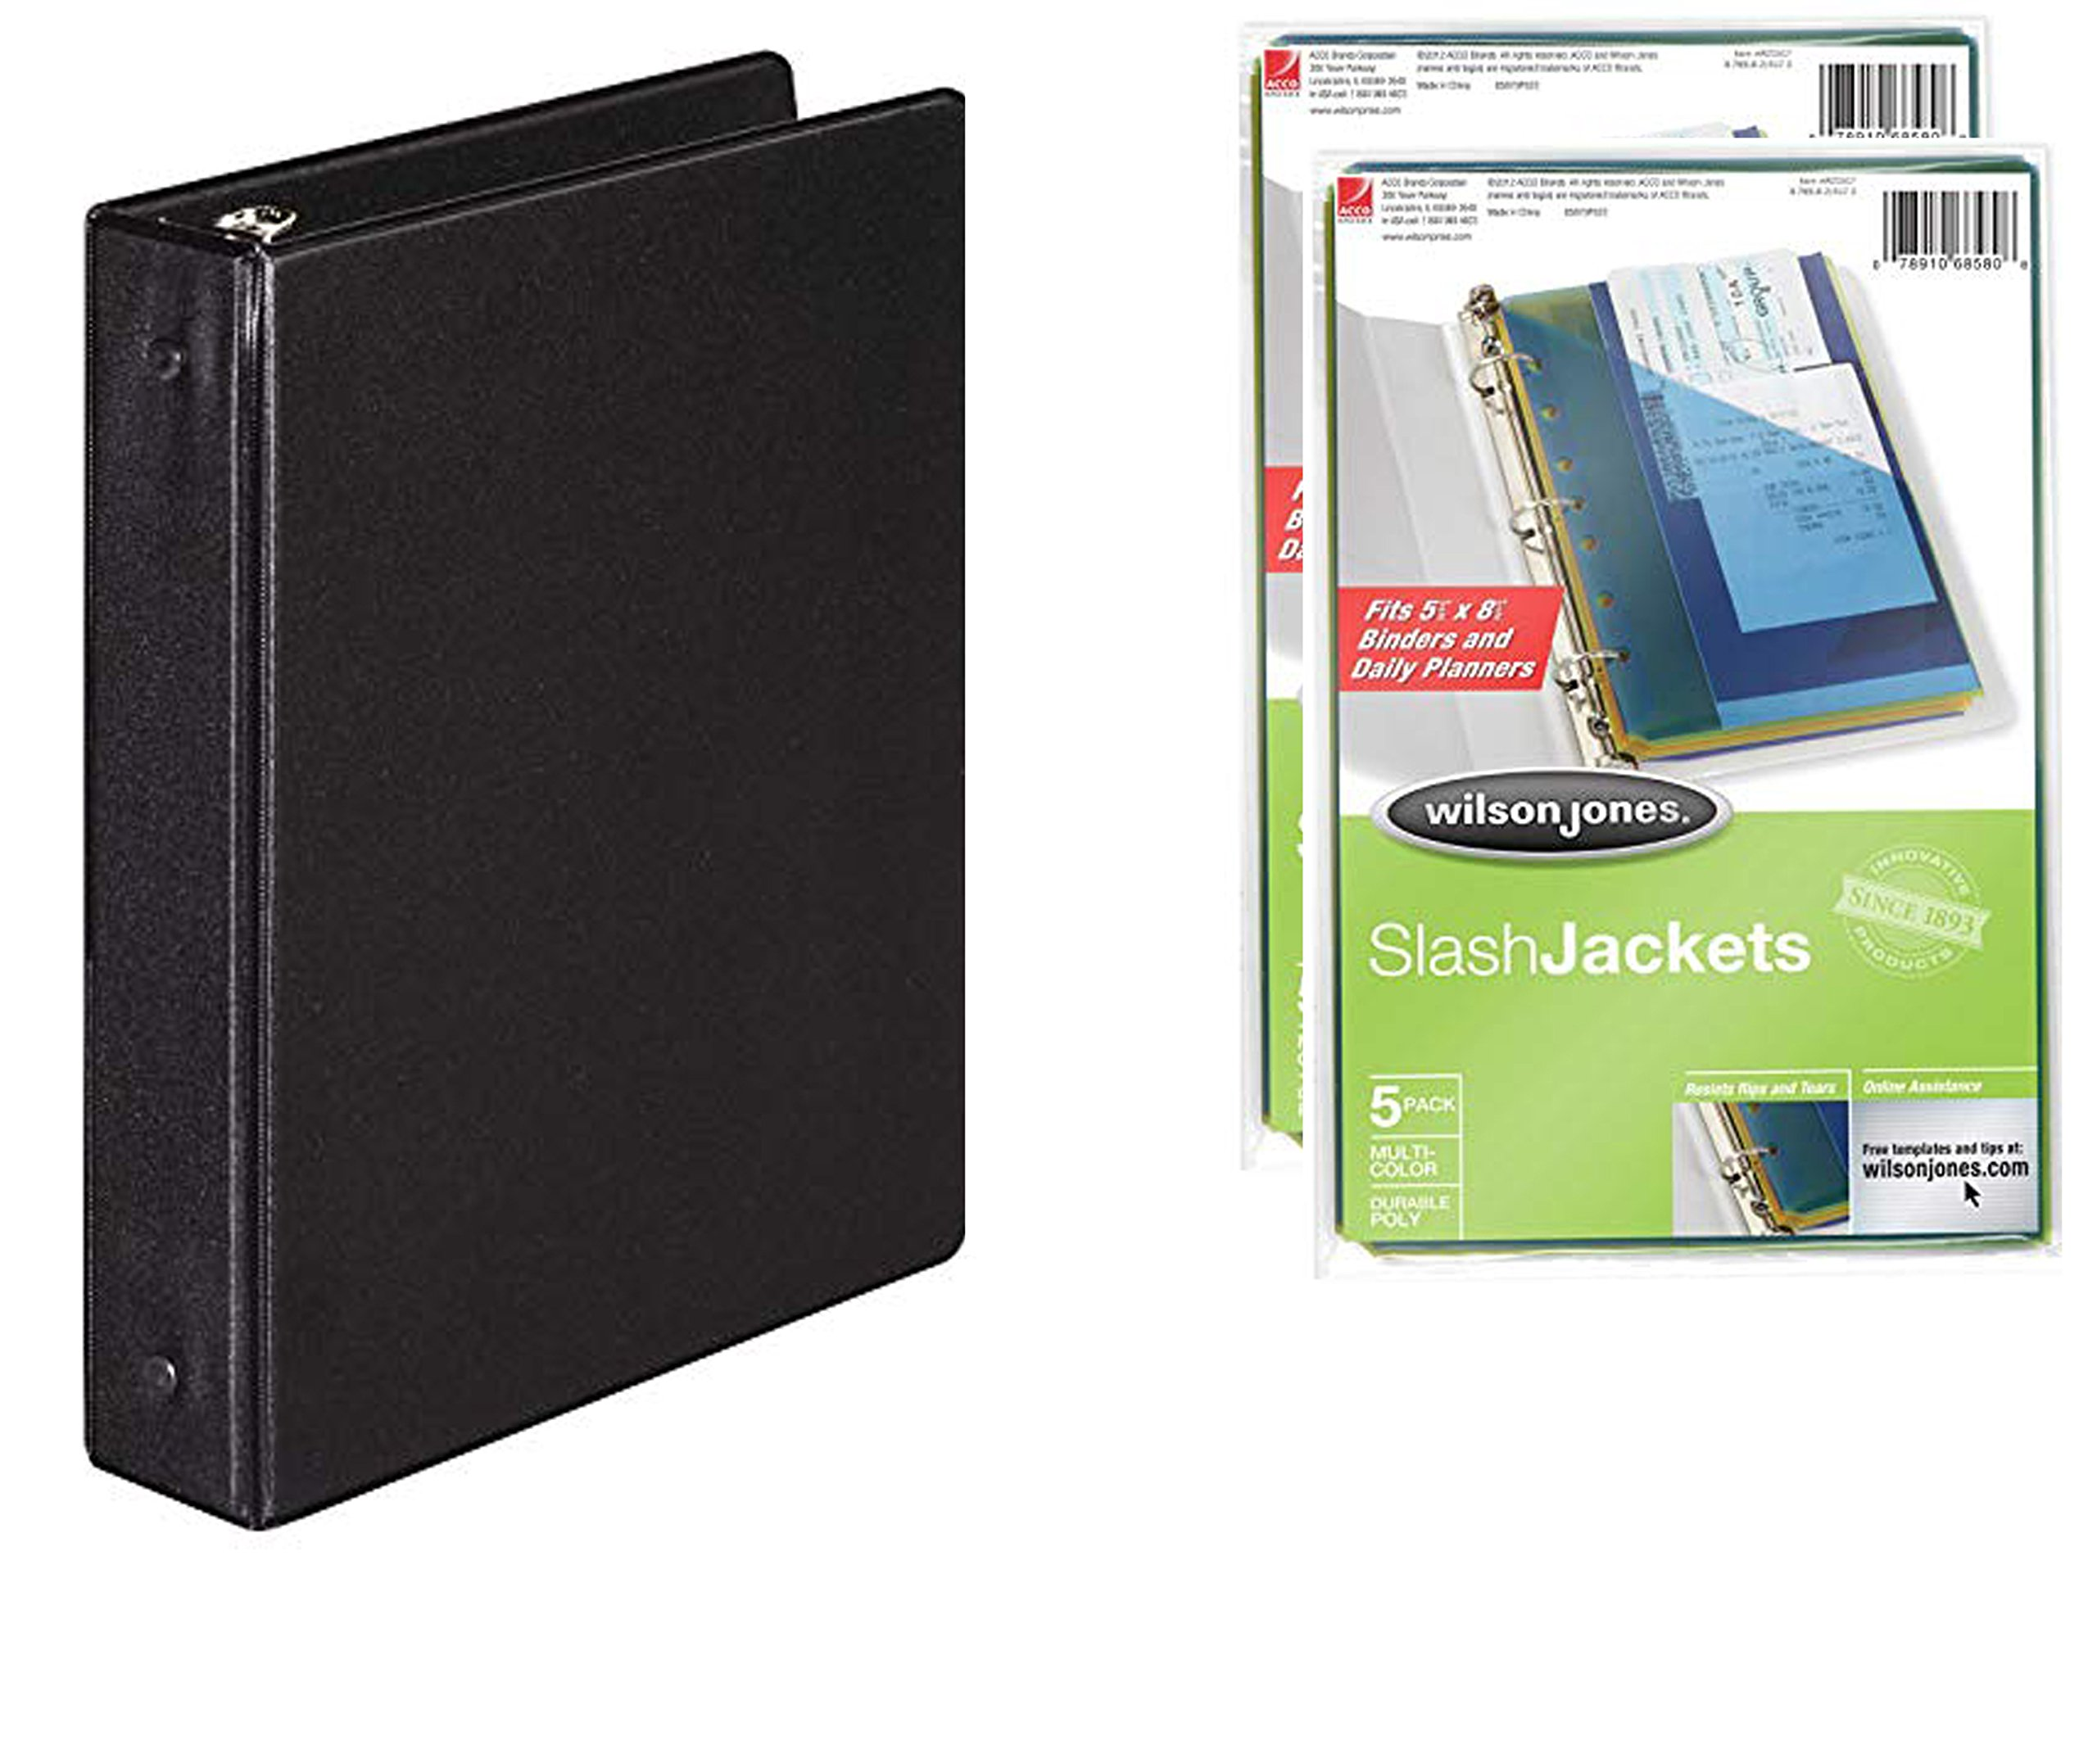 Wilson Jones Basic Round Ring Black Vinyl Binder (5.5 x 8.5 in, 175-Sheet, 1-in. Rings) Bundle [Pack of 1] incl. (2) Sets of 5-Pack, Mini Poly Slash Jackets (5.5 x 8.5 in, Assorted Colors) by MSP Office Supplies (Image #1)